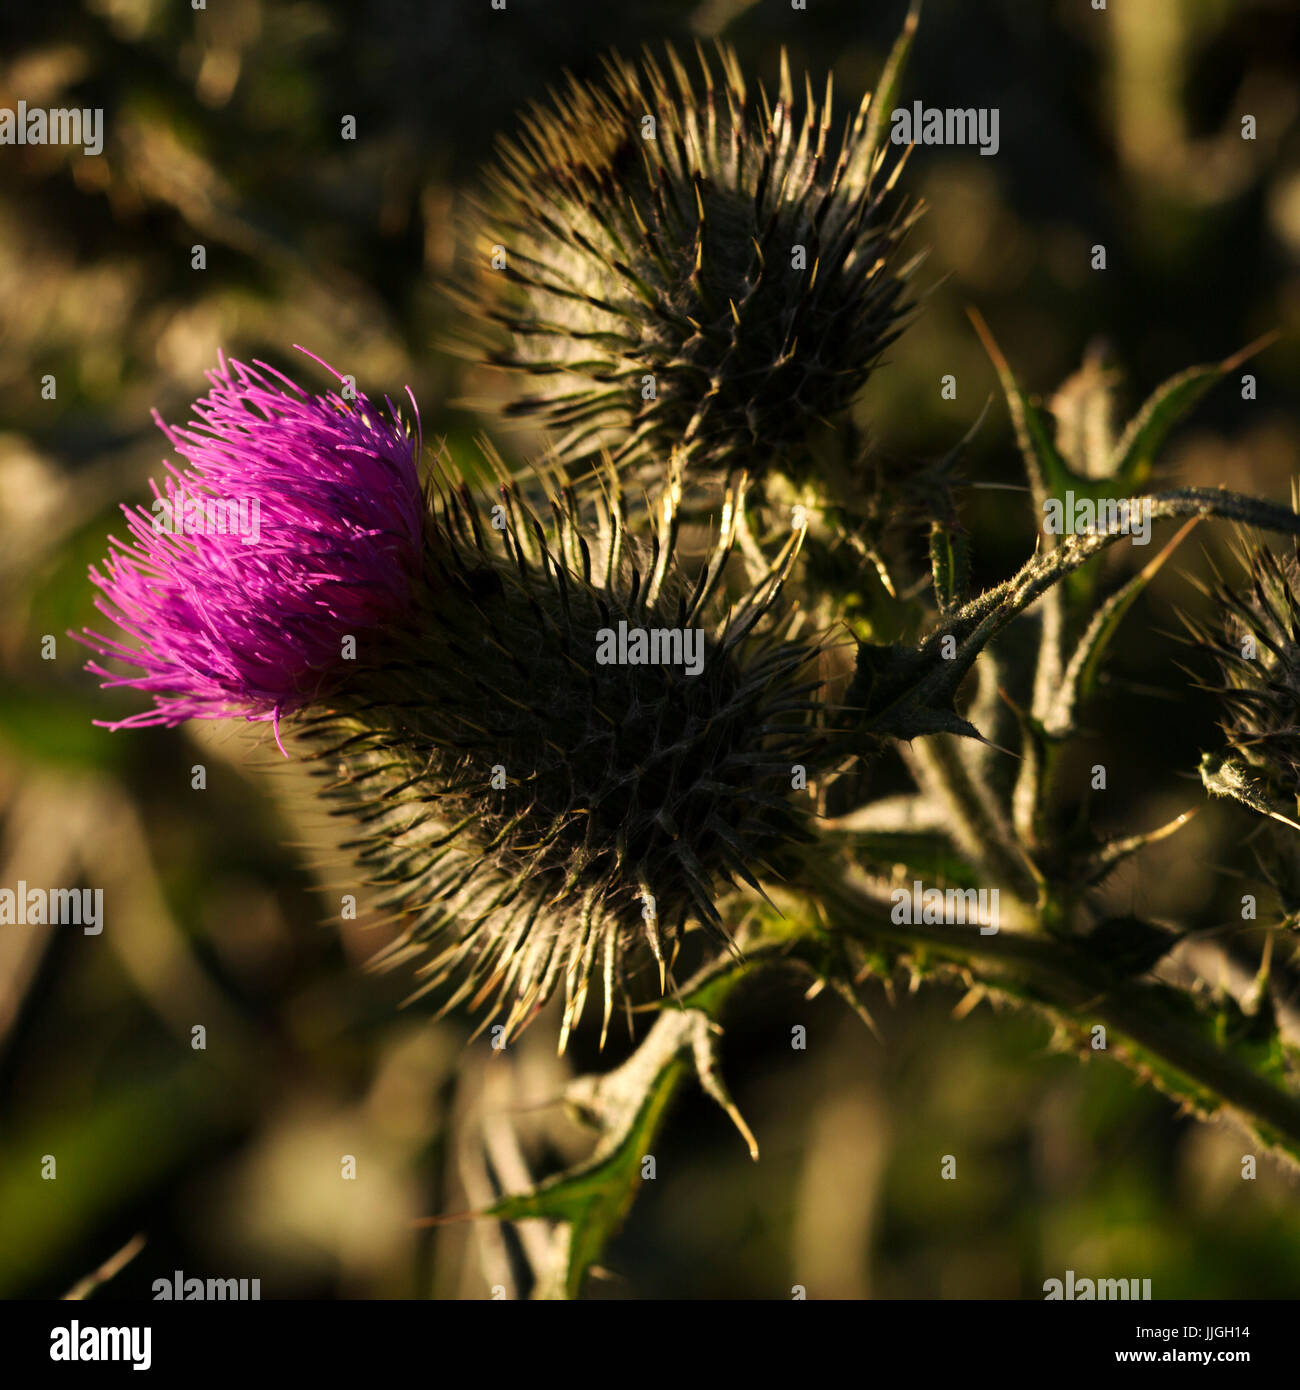 Close up of a thistle the thistle is a national symbol of scotland close up of a thistle the thistle is a national symbol of scotland buycottarizona Image collections